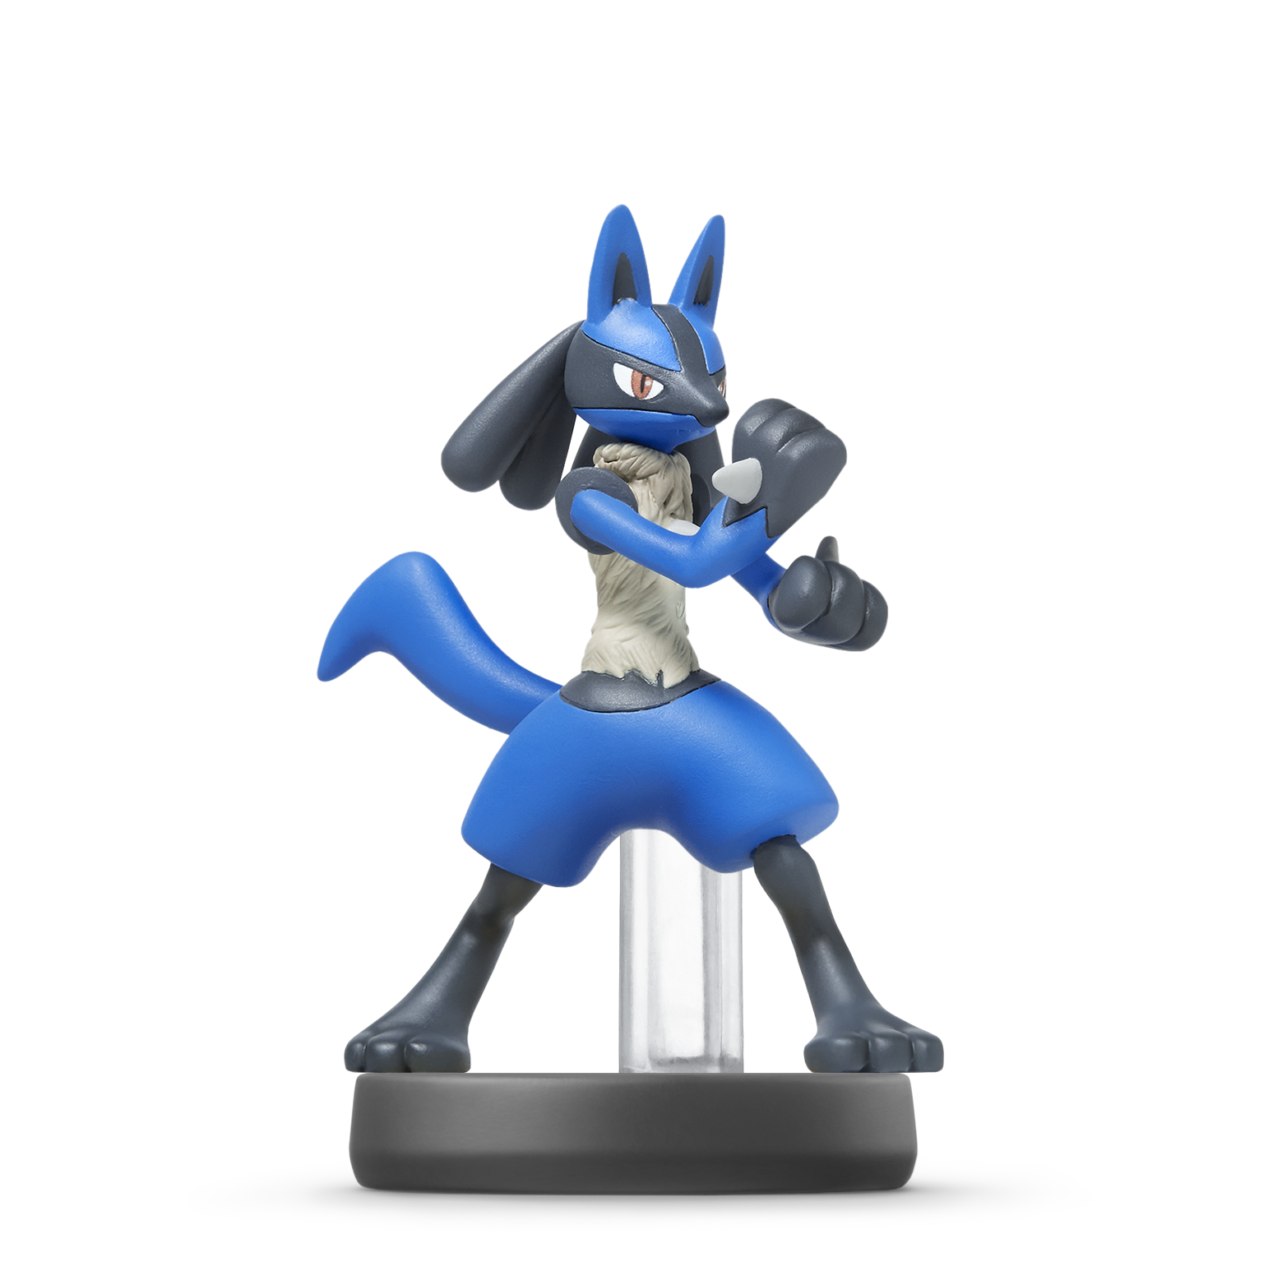 Lucario amiibo exclusive to Toys R Us